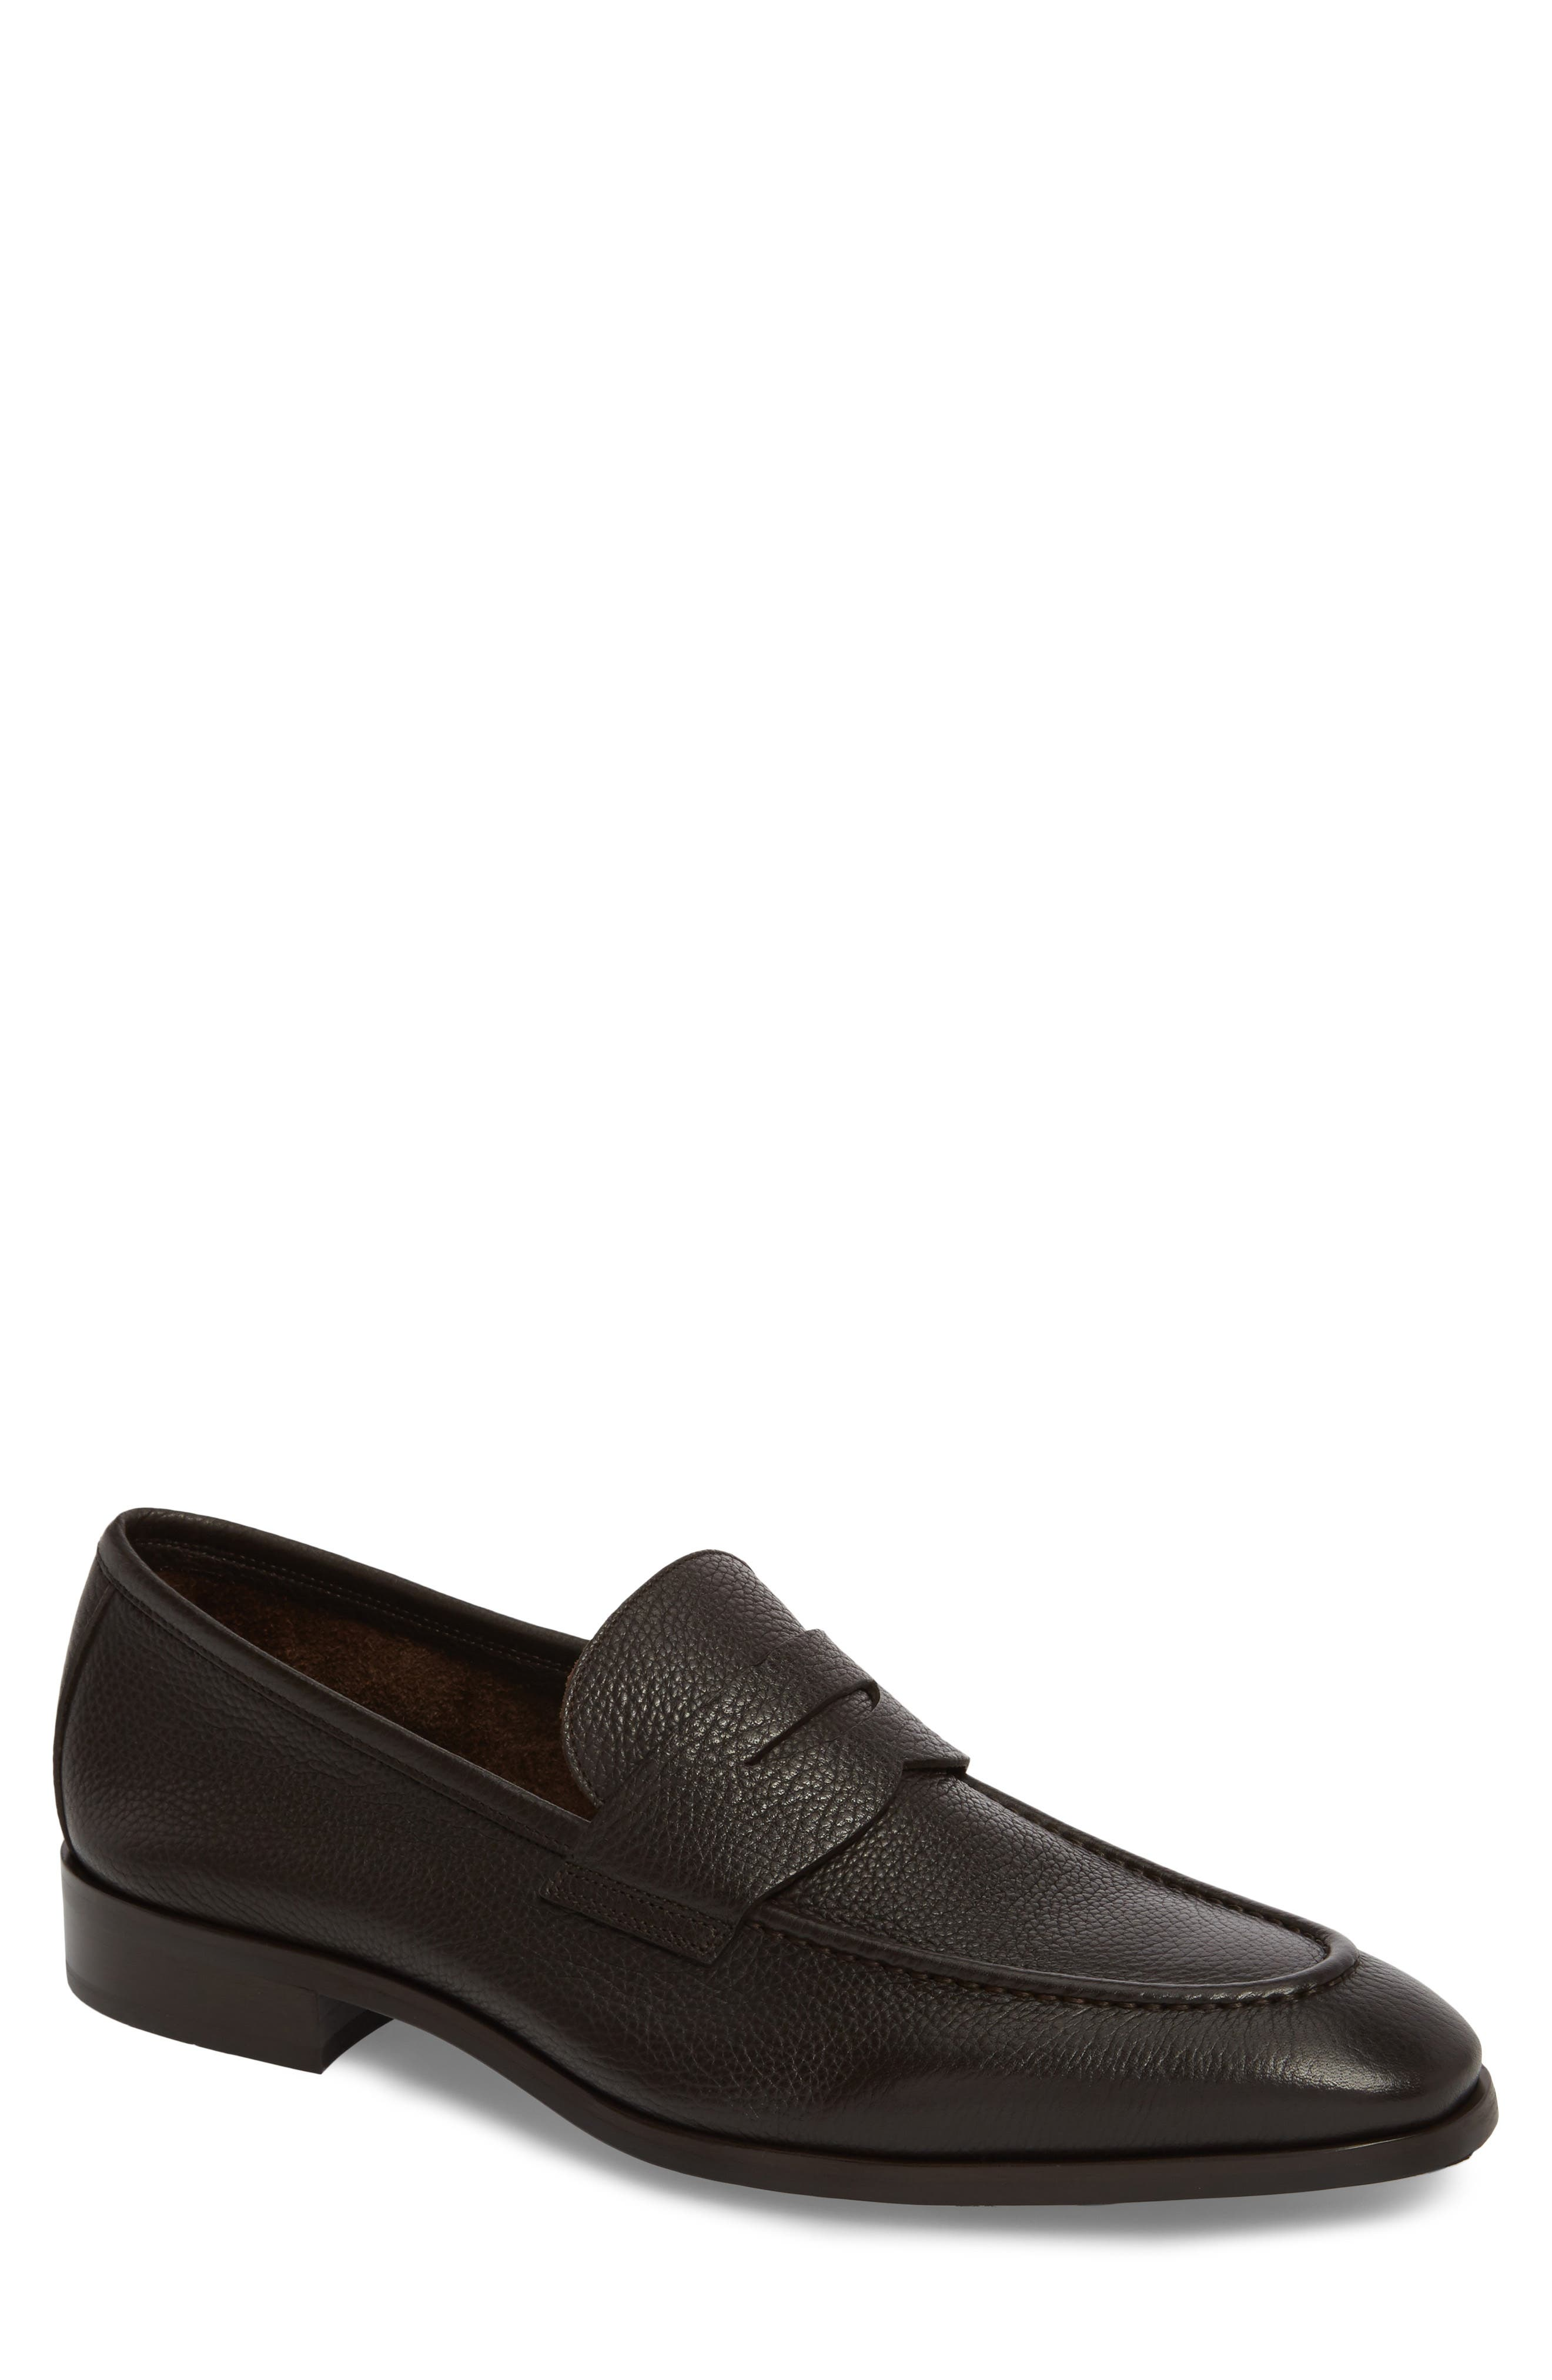 Johnson Penny Loafer,                             Main thumbnail 1, color,                             Tmoro Leather